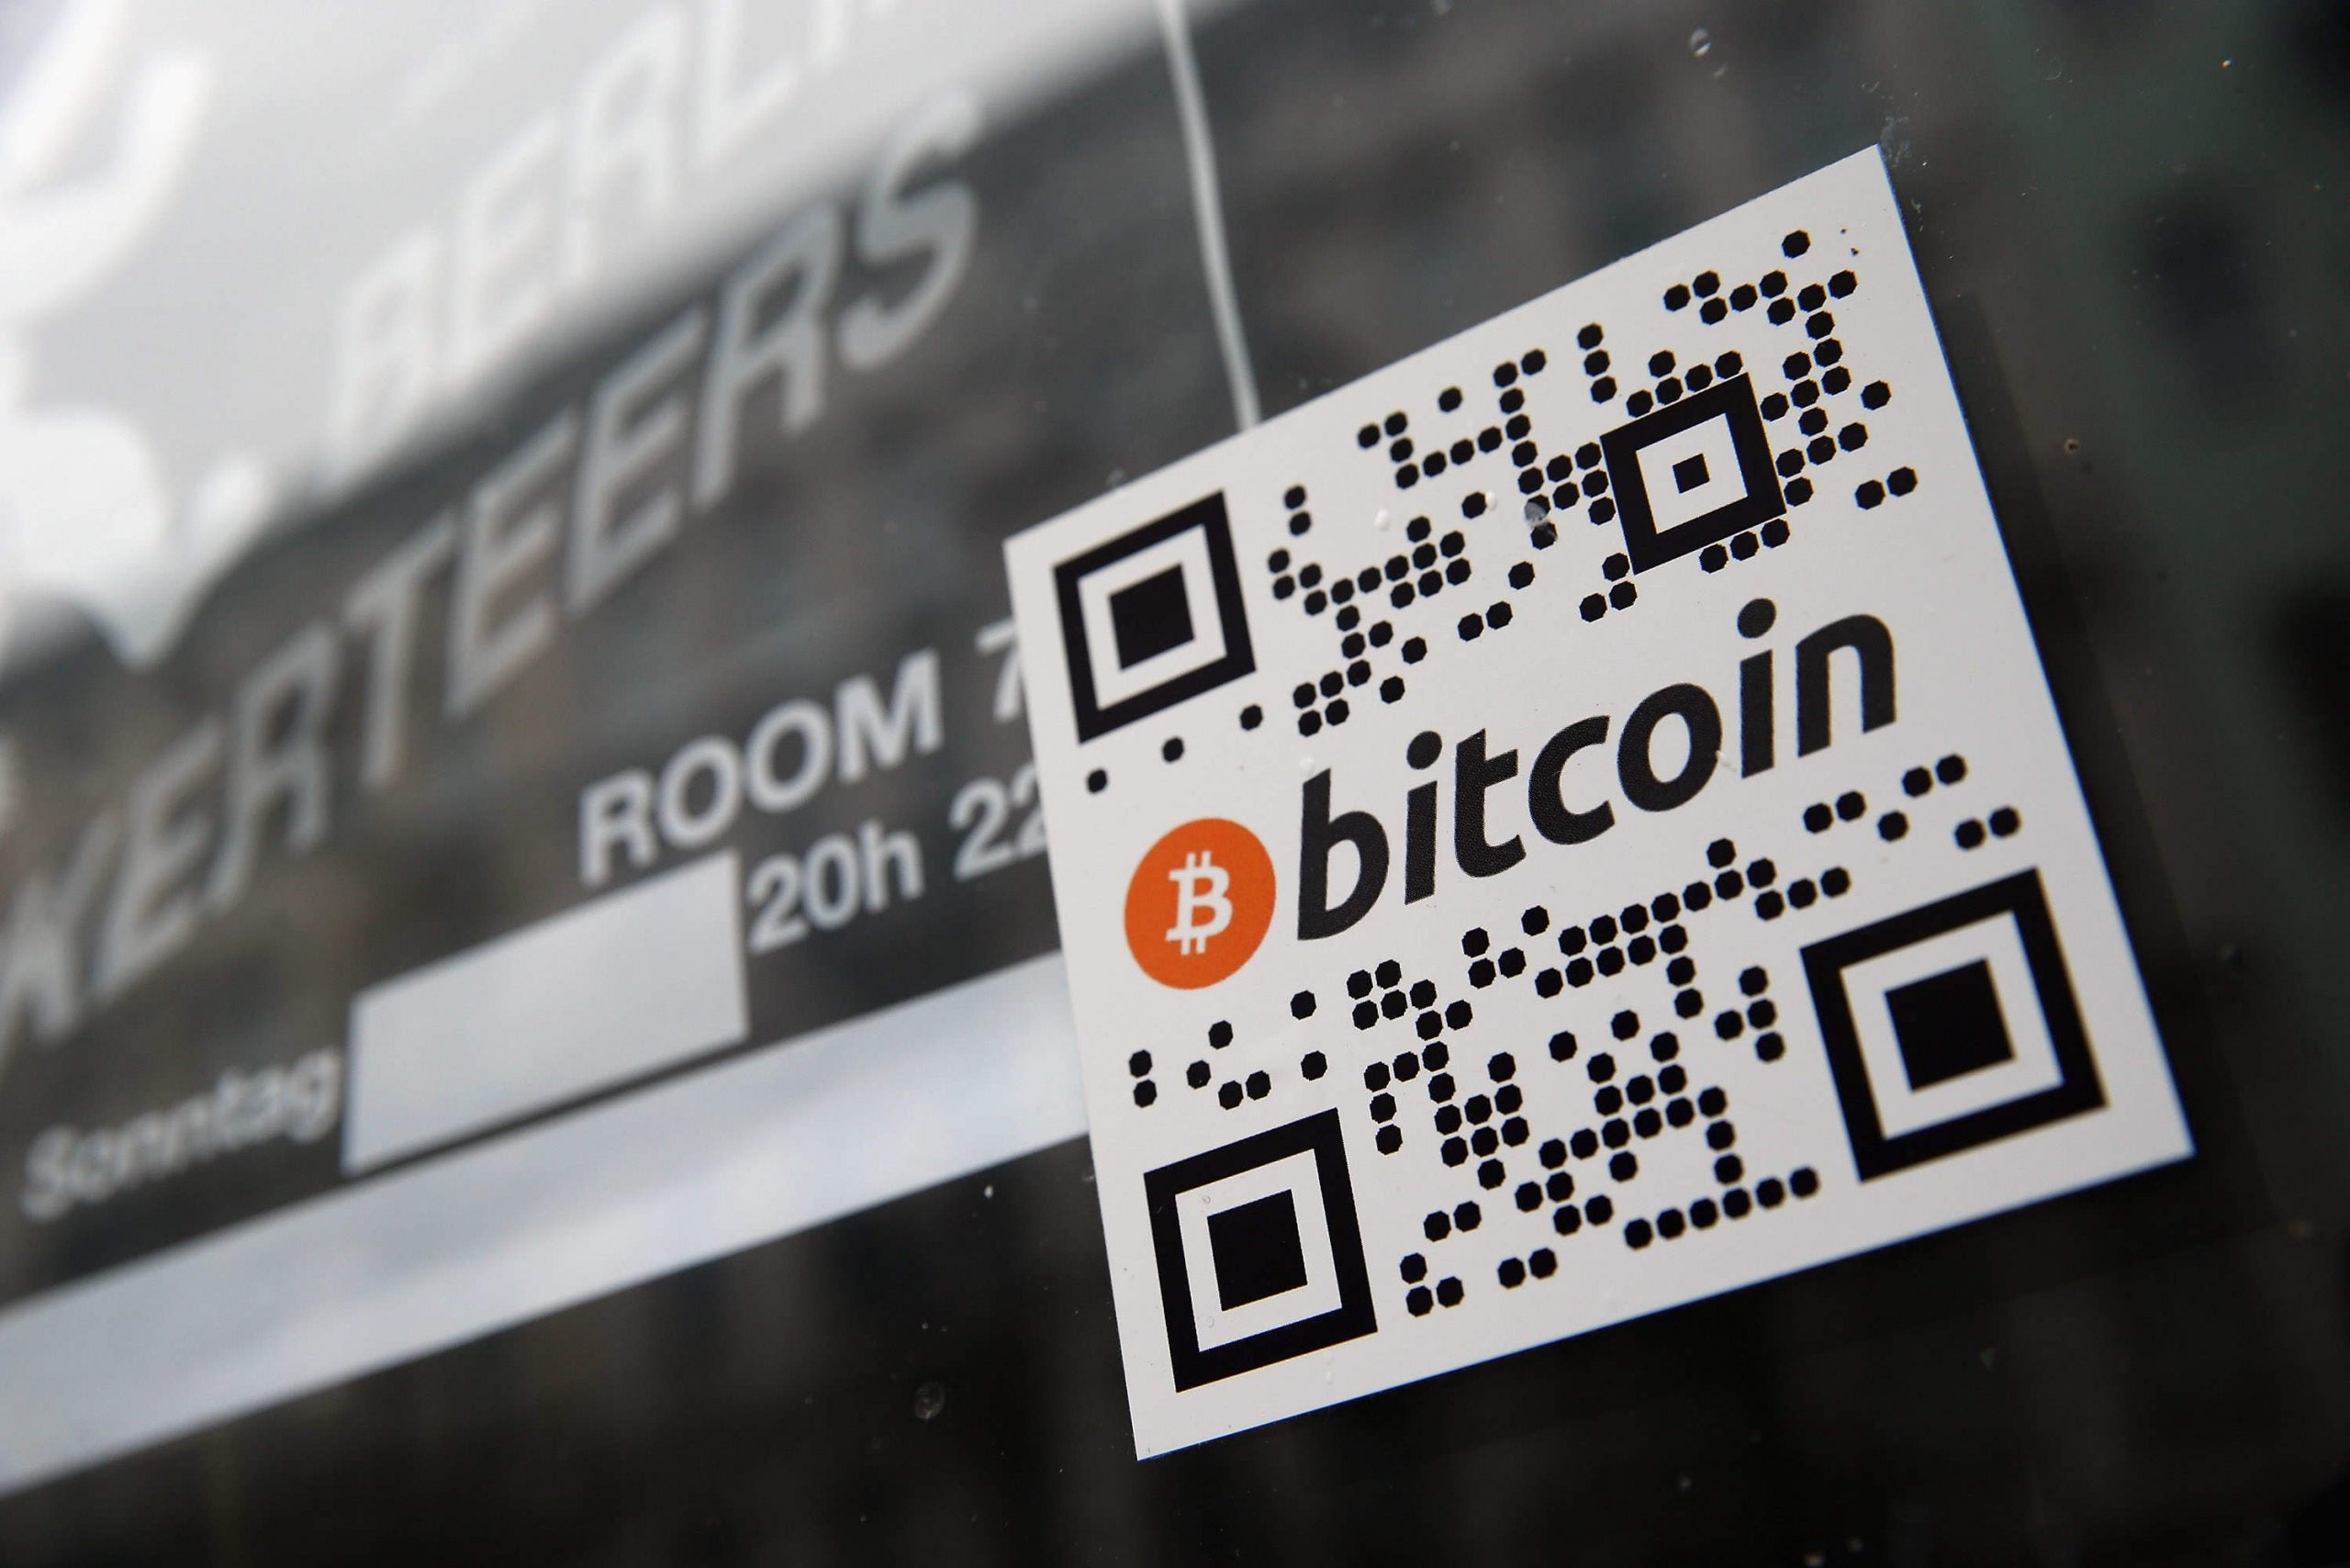 The newbies' guide to bitcoin: should you invest?